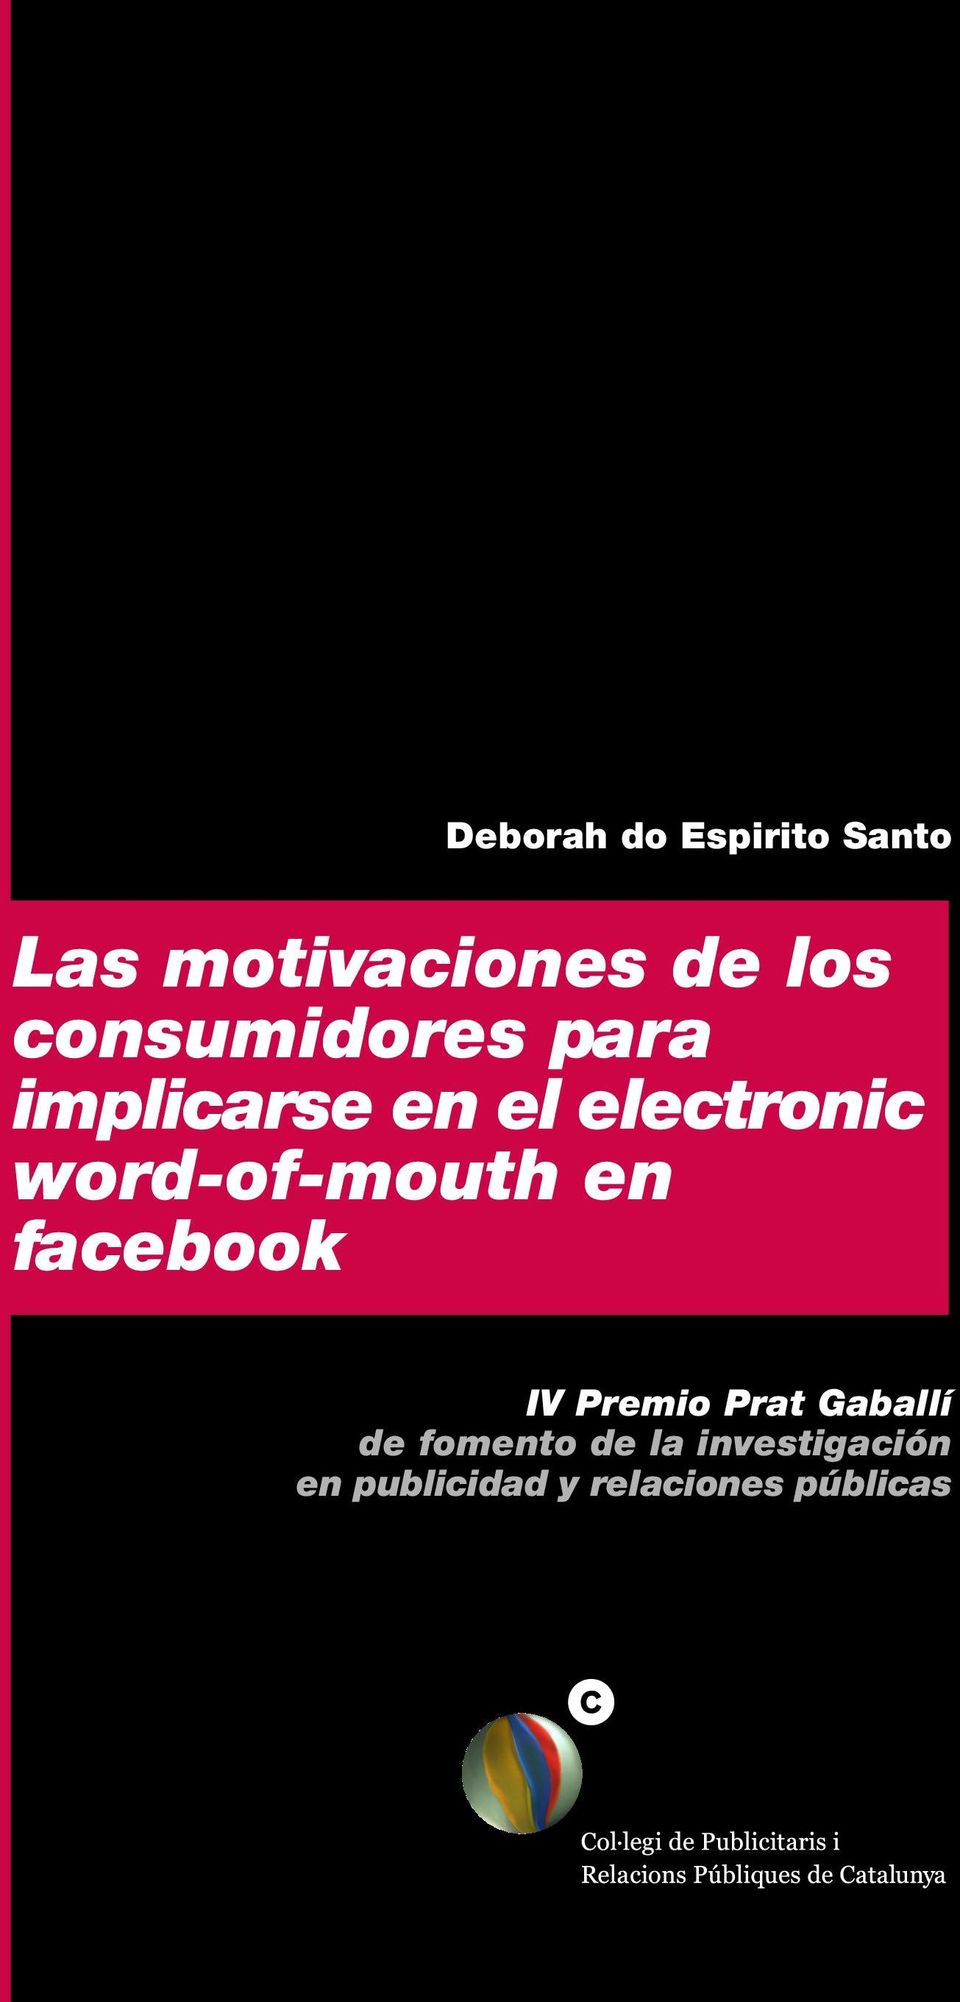 motivaciones de los consumidores para implicarse en el electronic word-of-mouth en